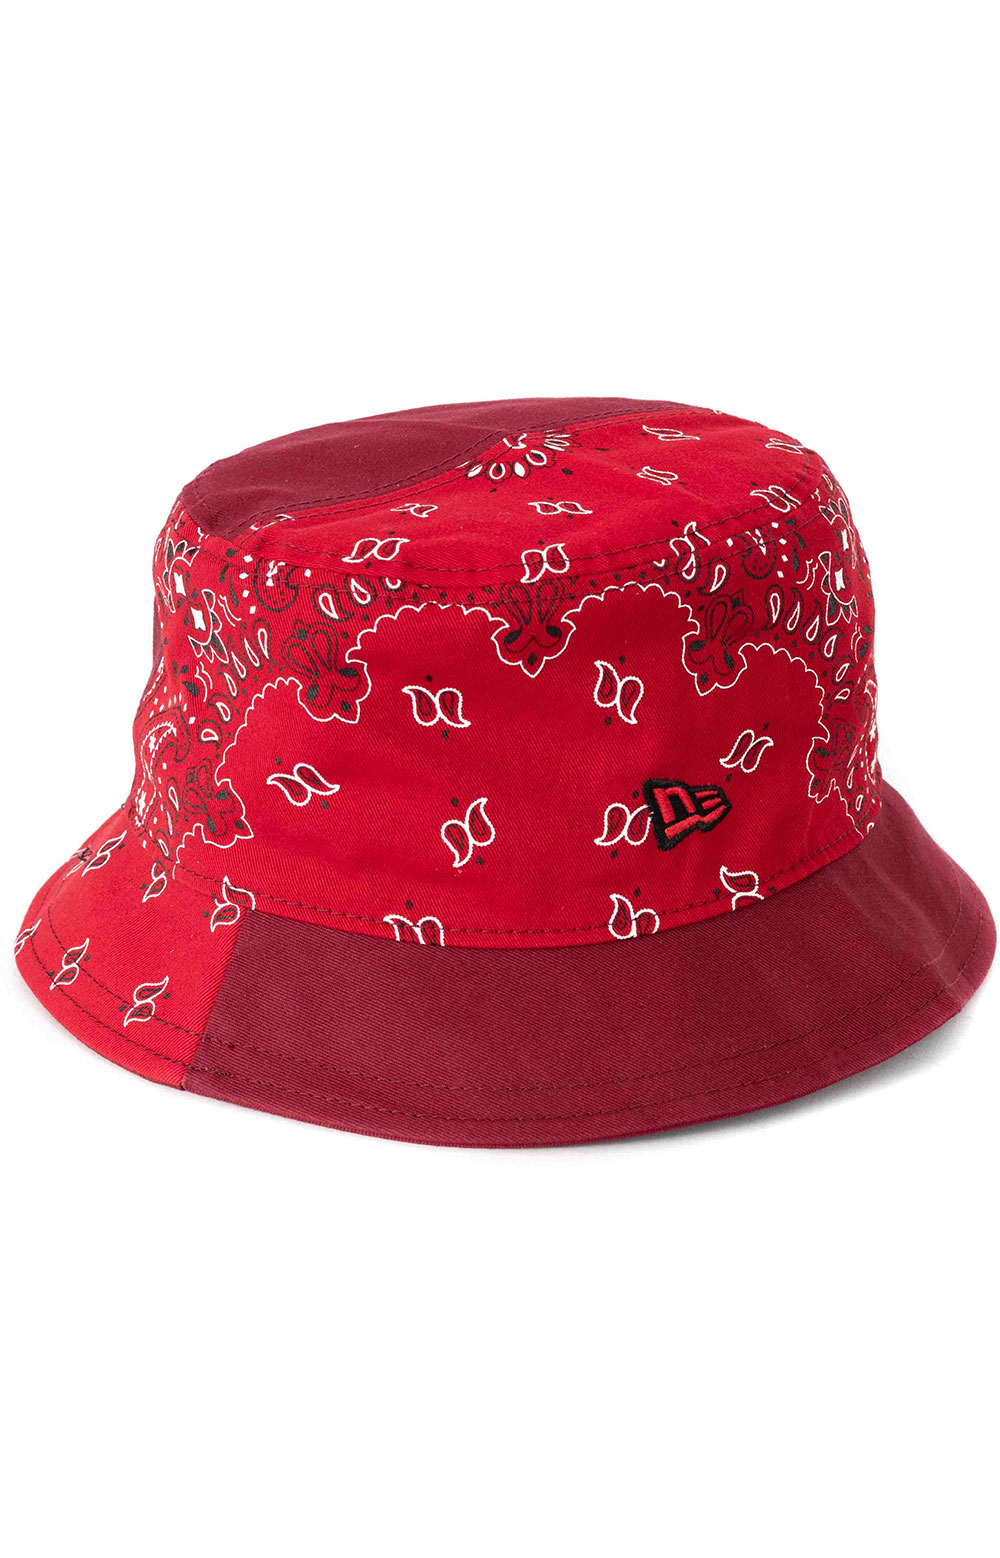 Paisley Patchwork Bucket Hat - Red